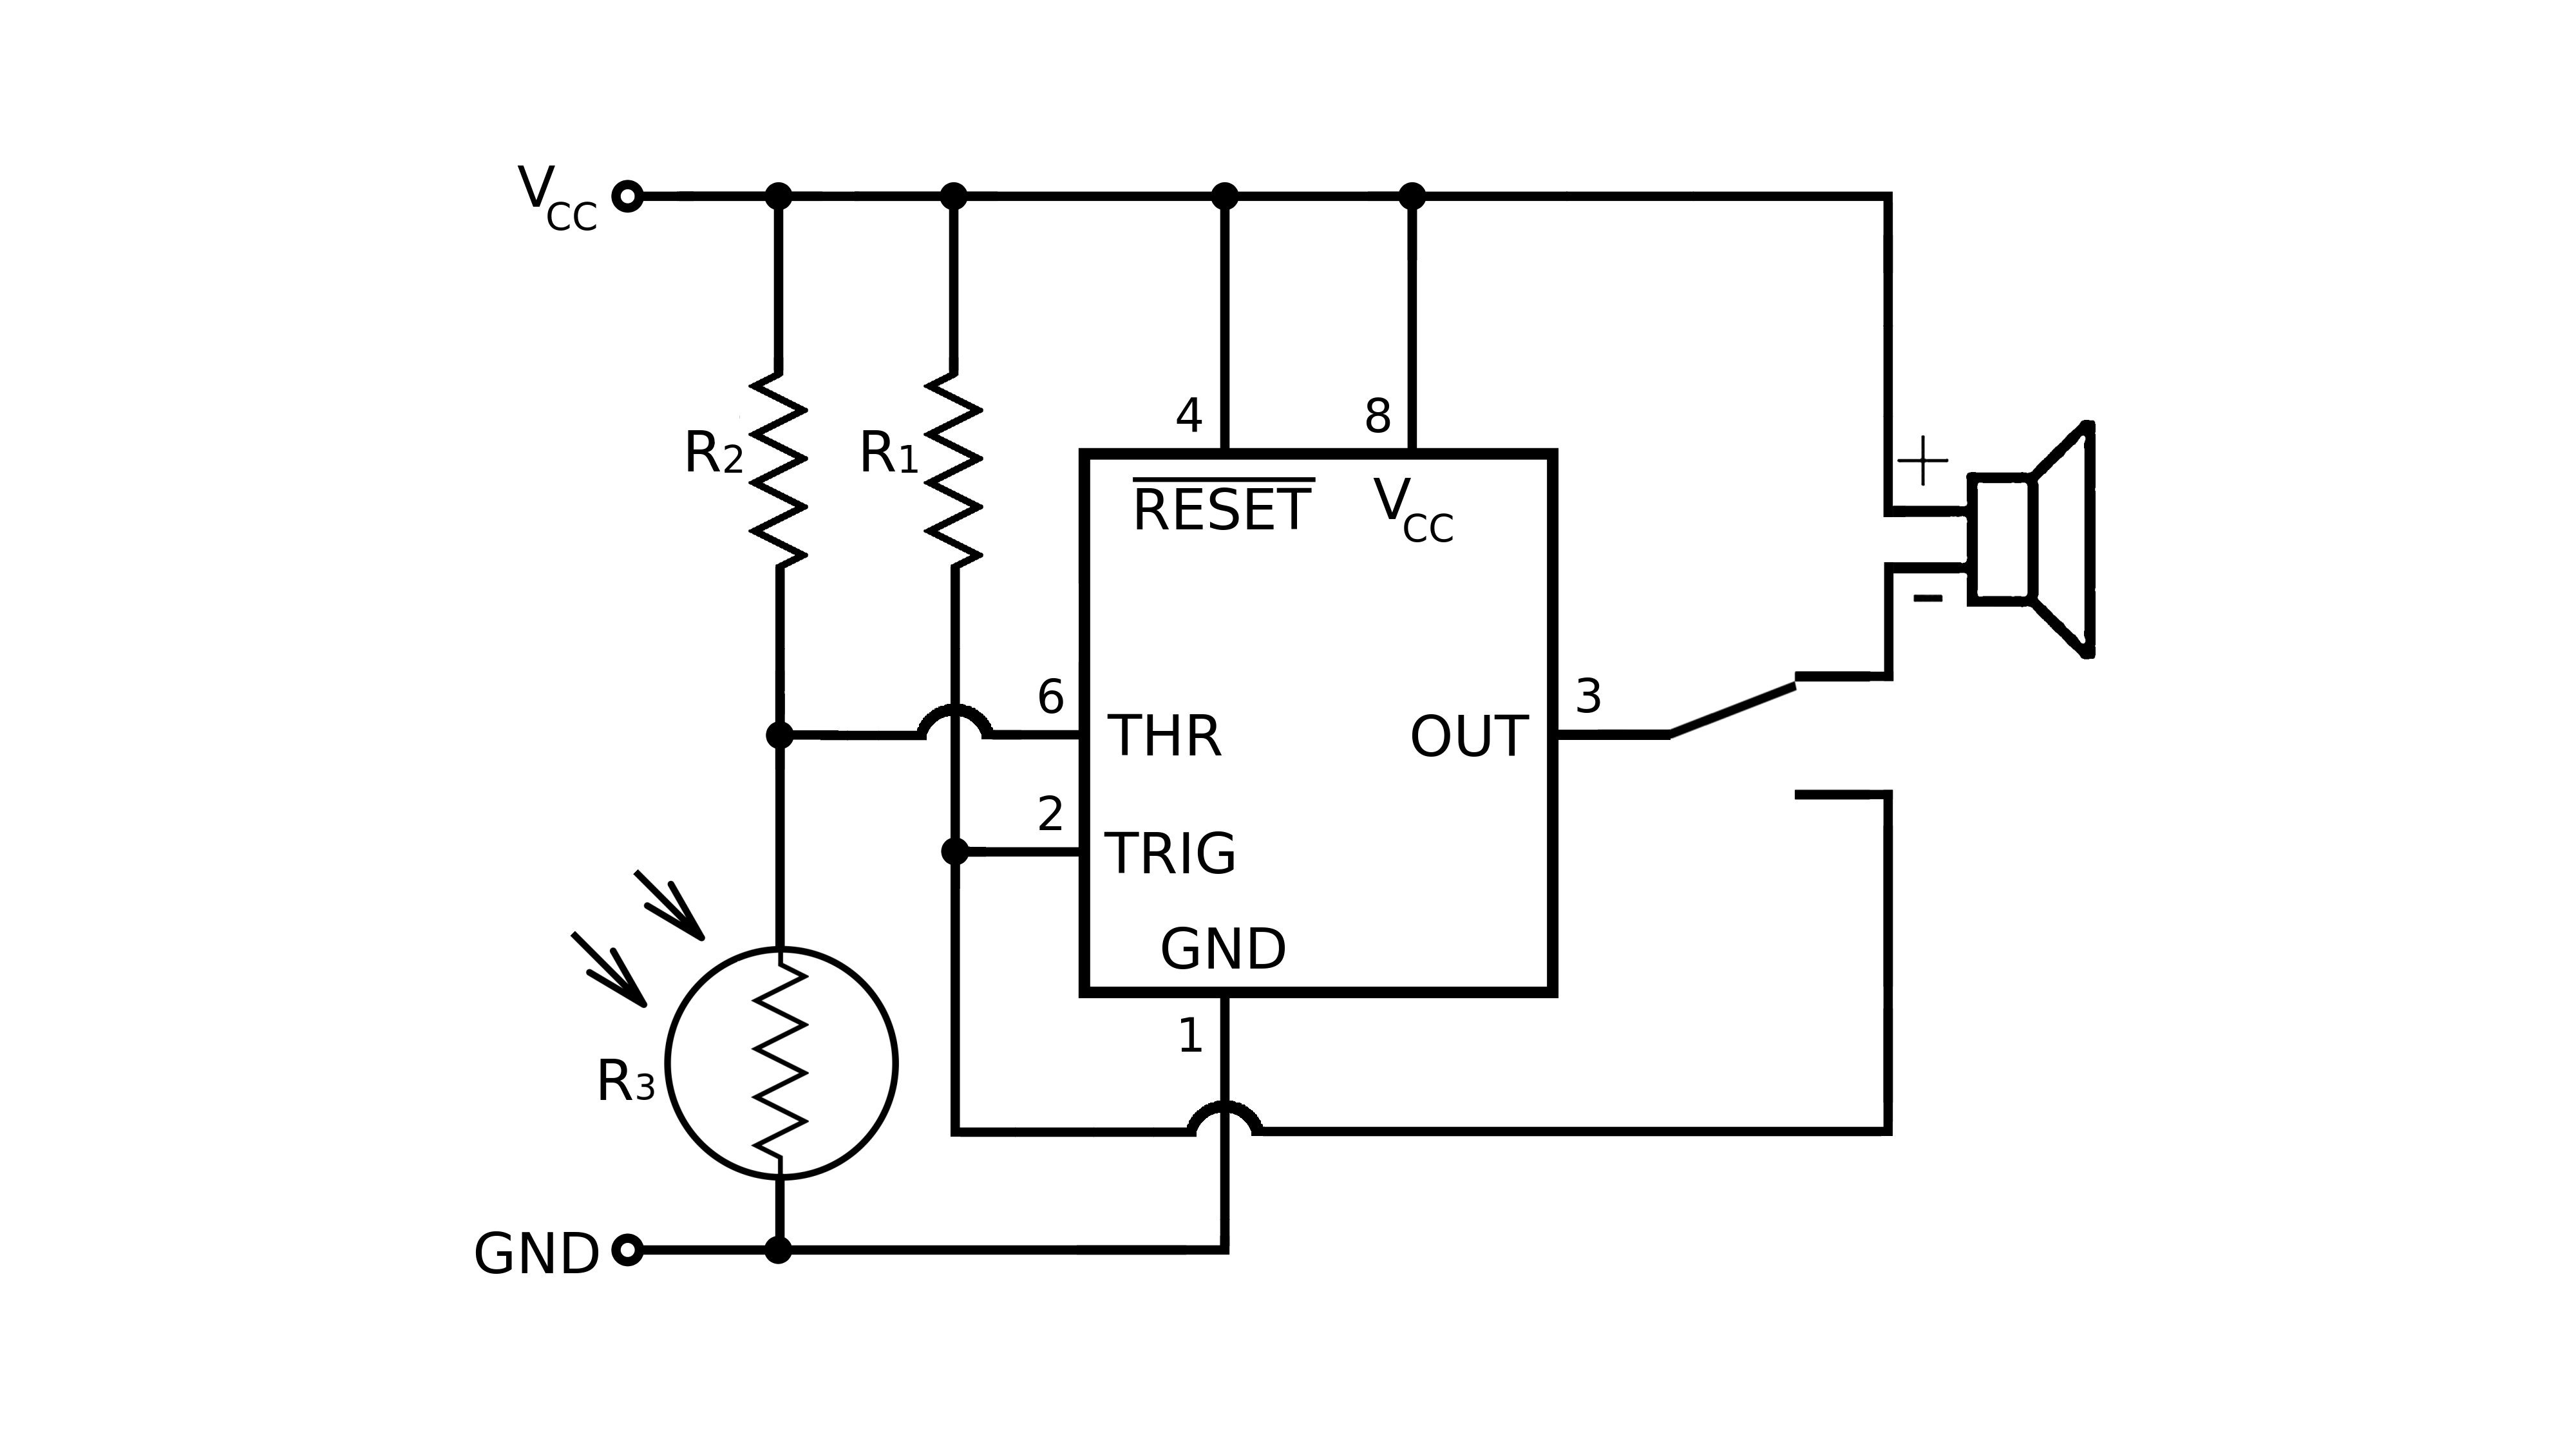 Pull Up Resistor For 555 Timer Ic